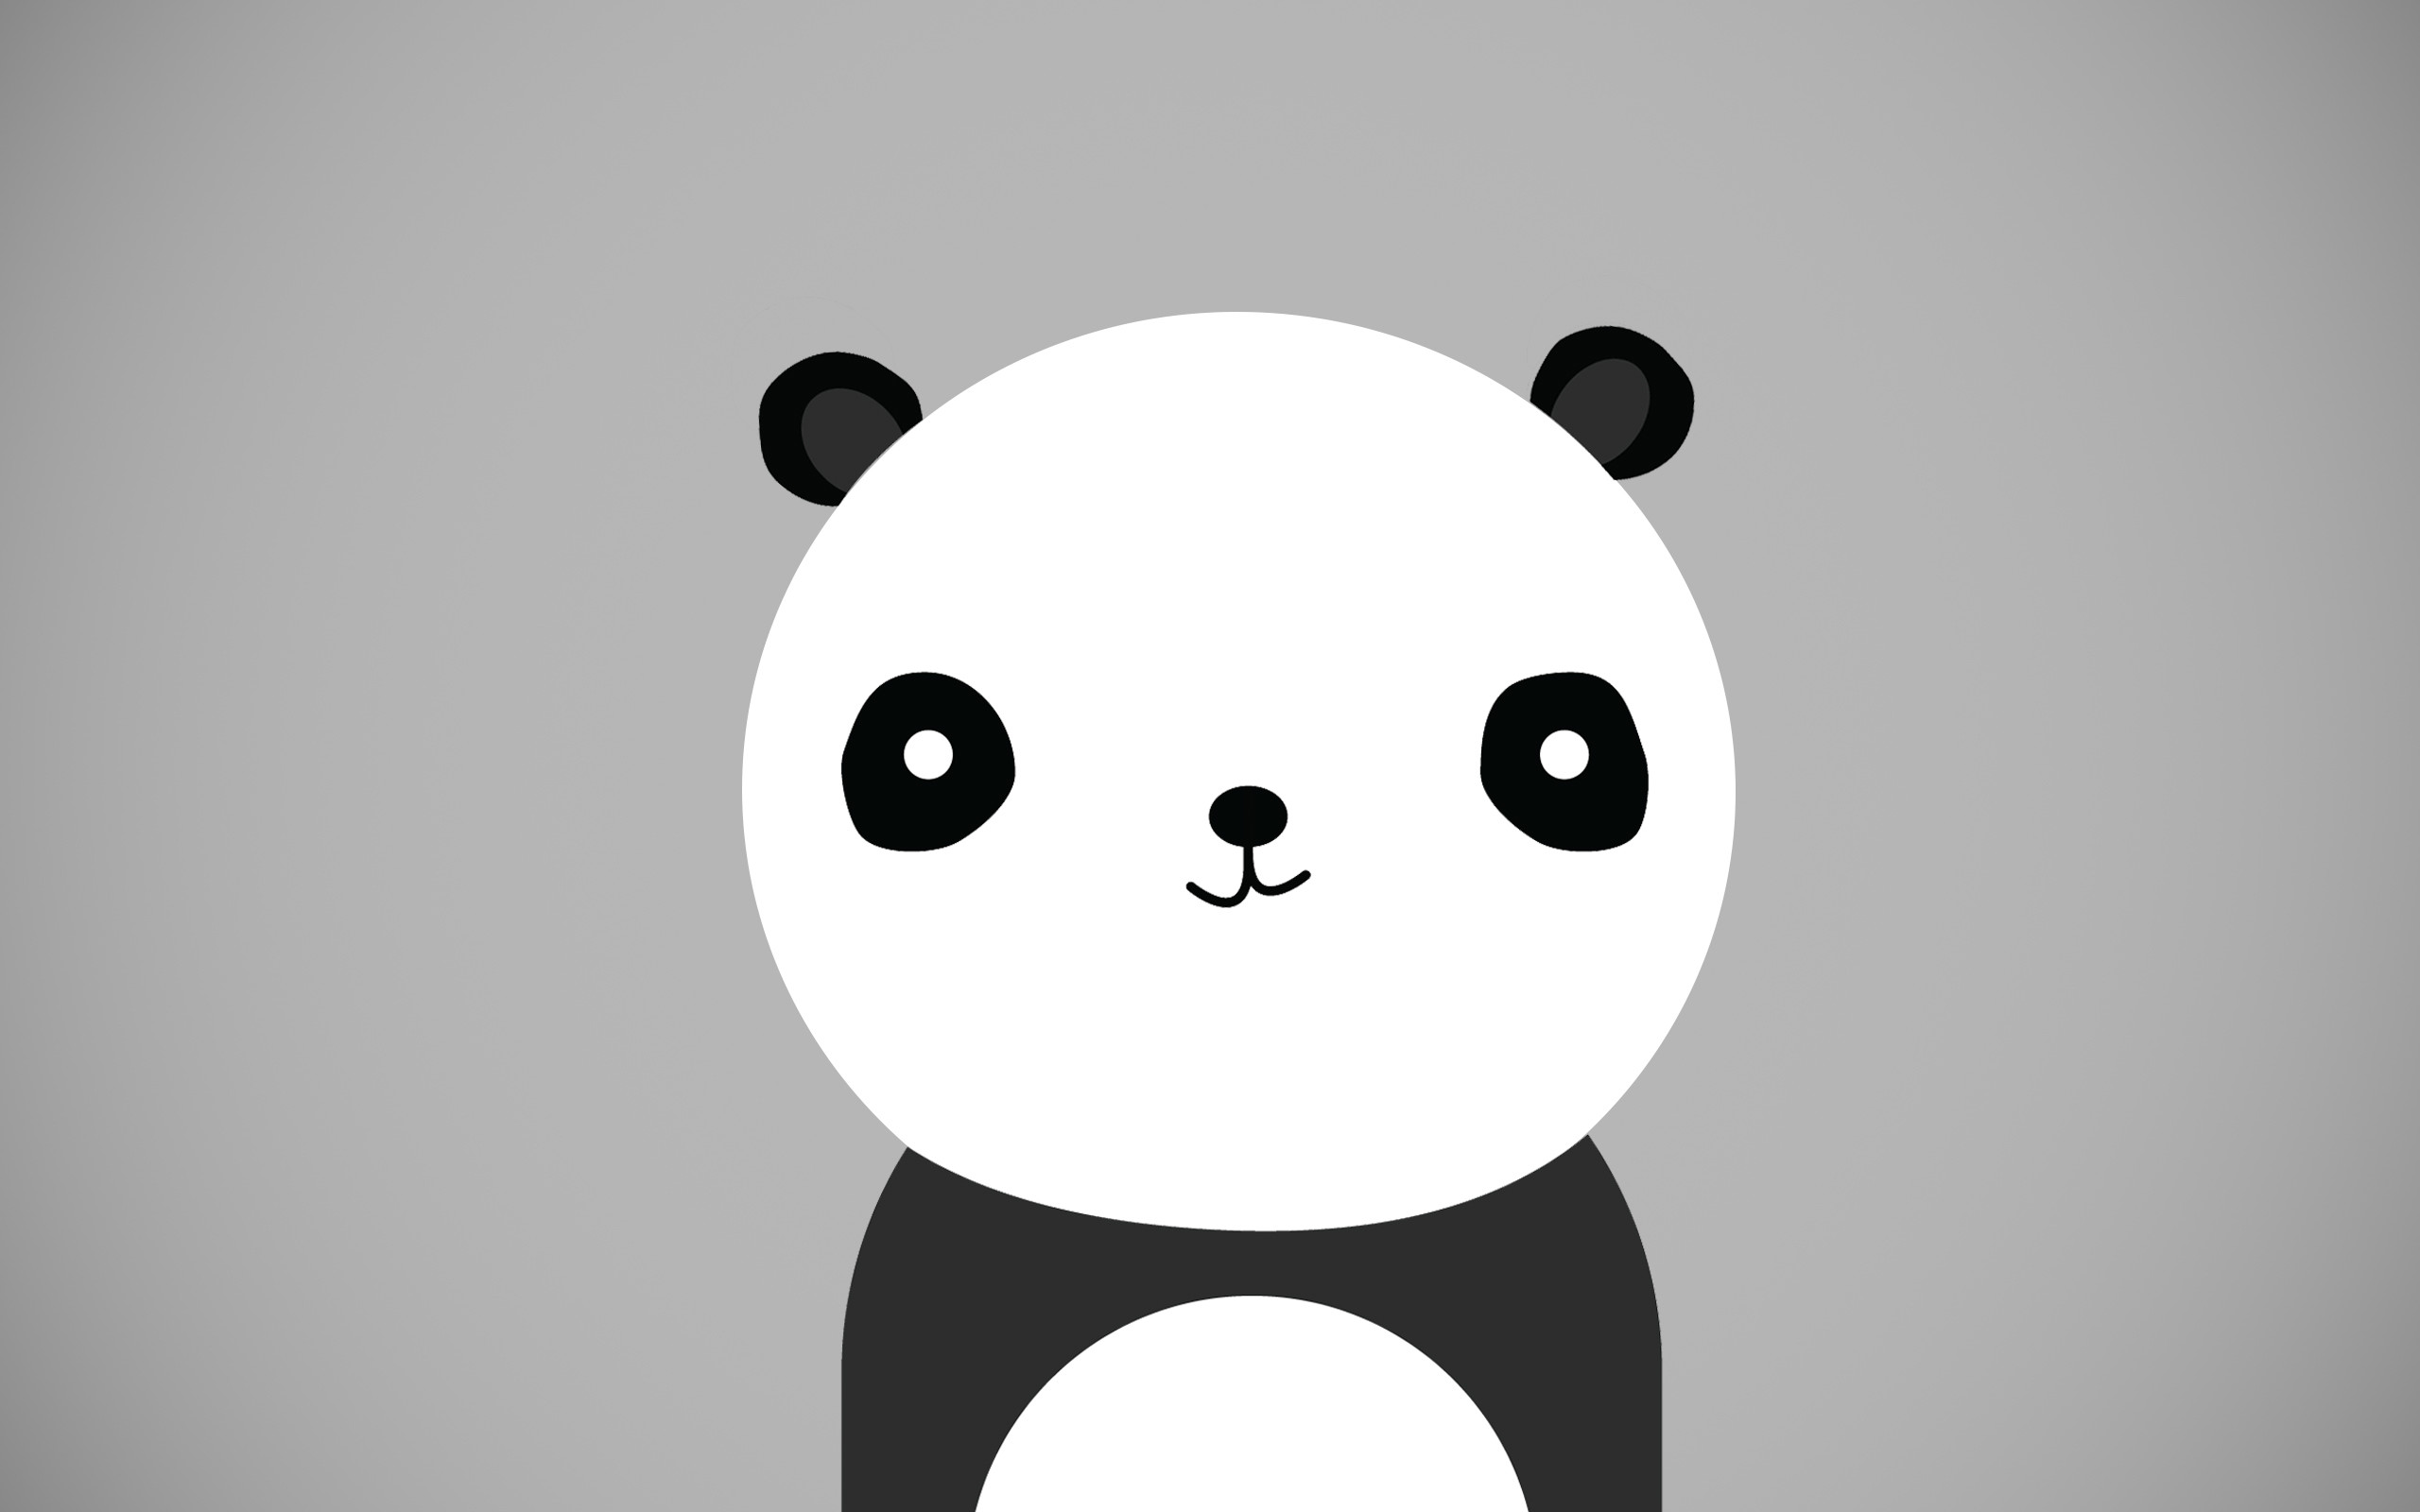 Cute Cartoon Sushi Wallpaper Kawaii Tare Panda Wallpaper 183 ① Wallpapertag